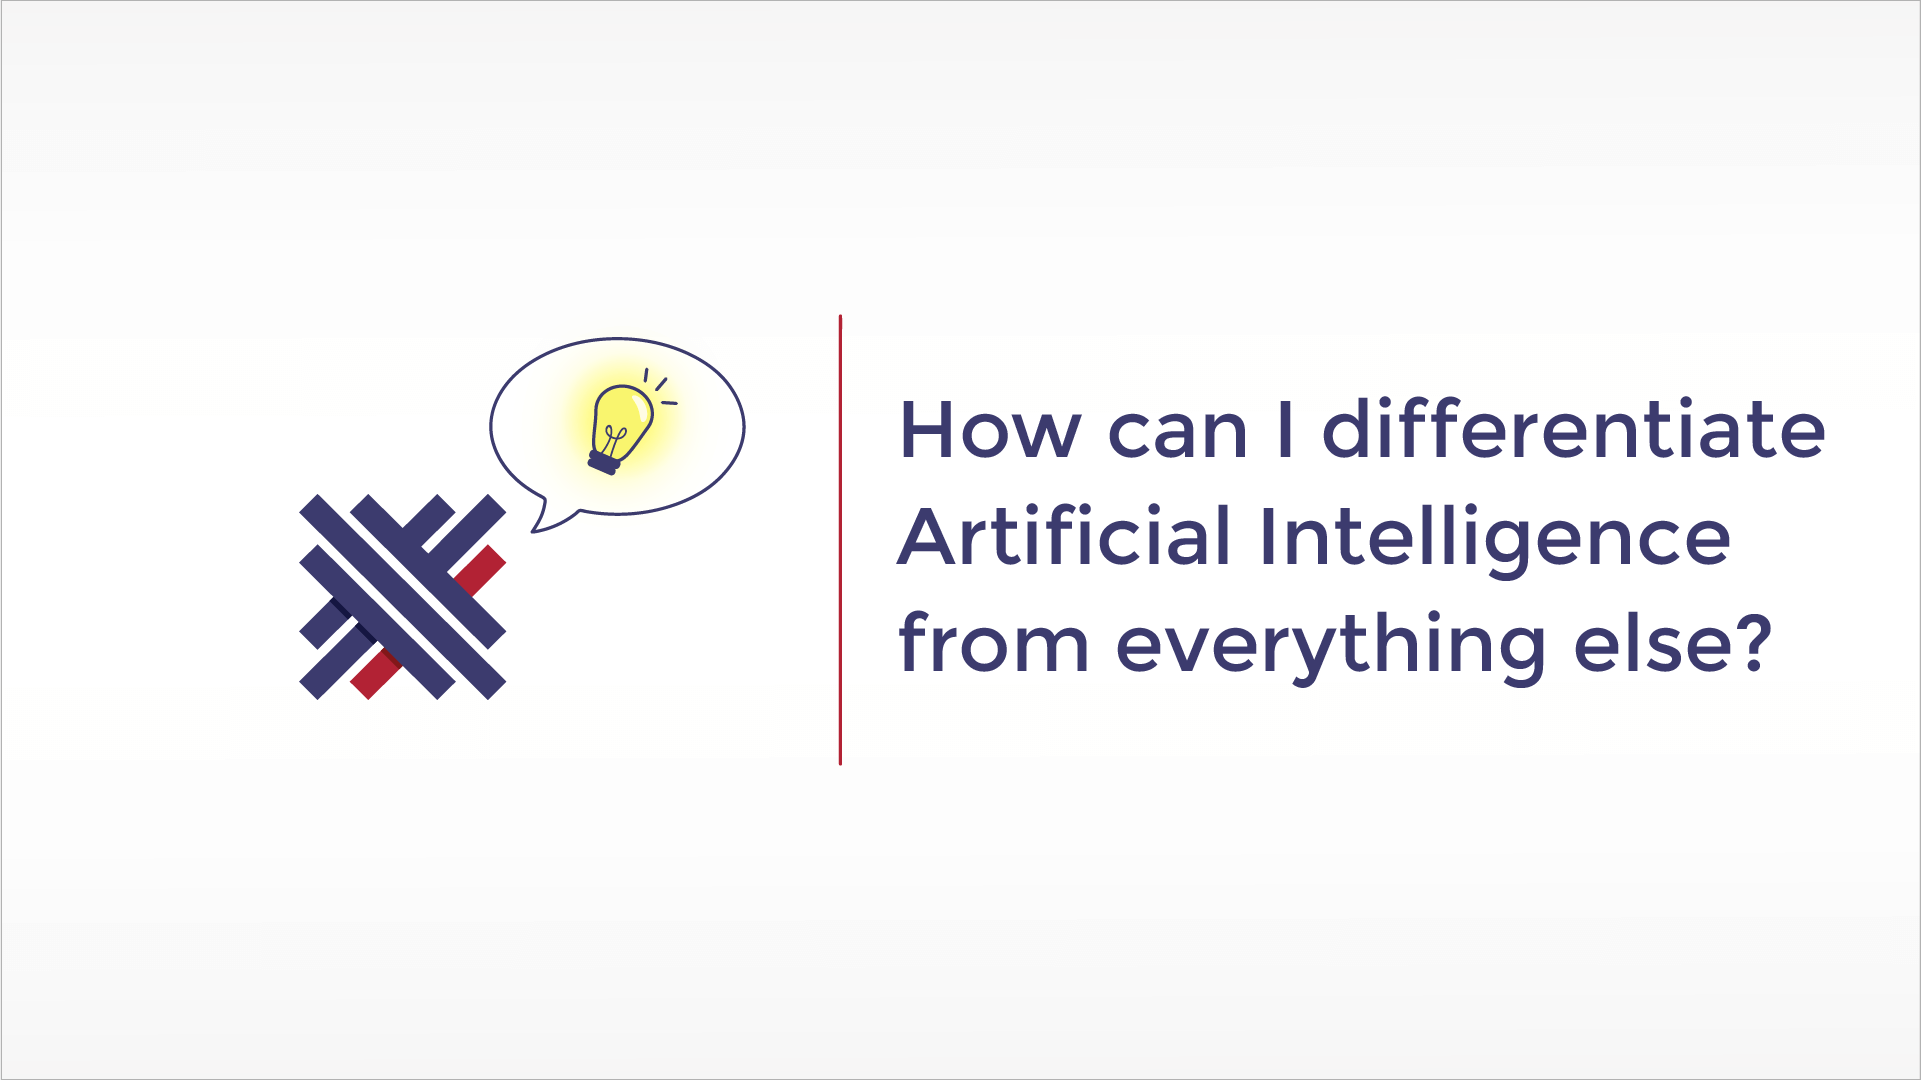 How can I differentiate Artificial Intelligence from everything else?